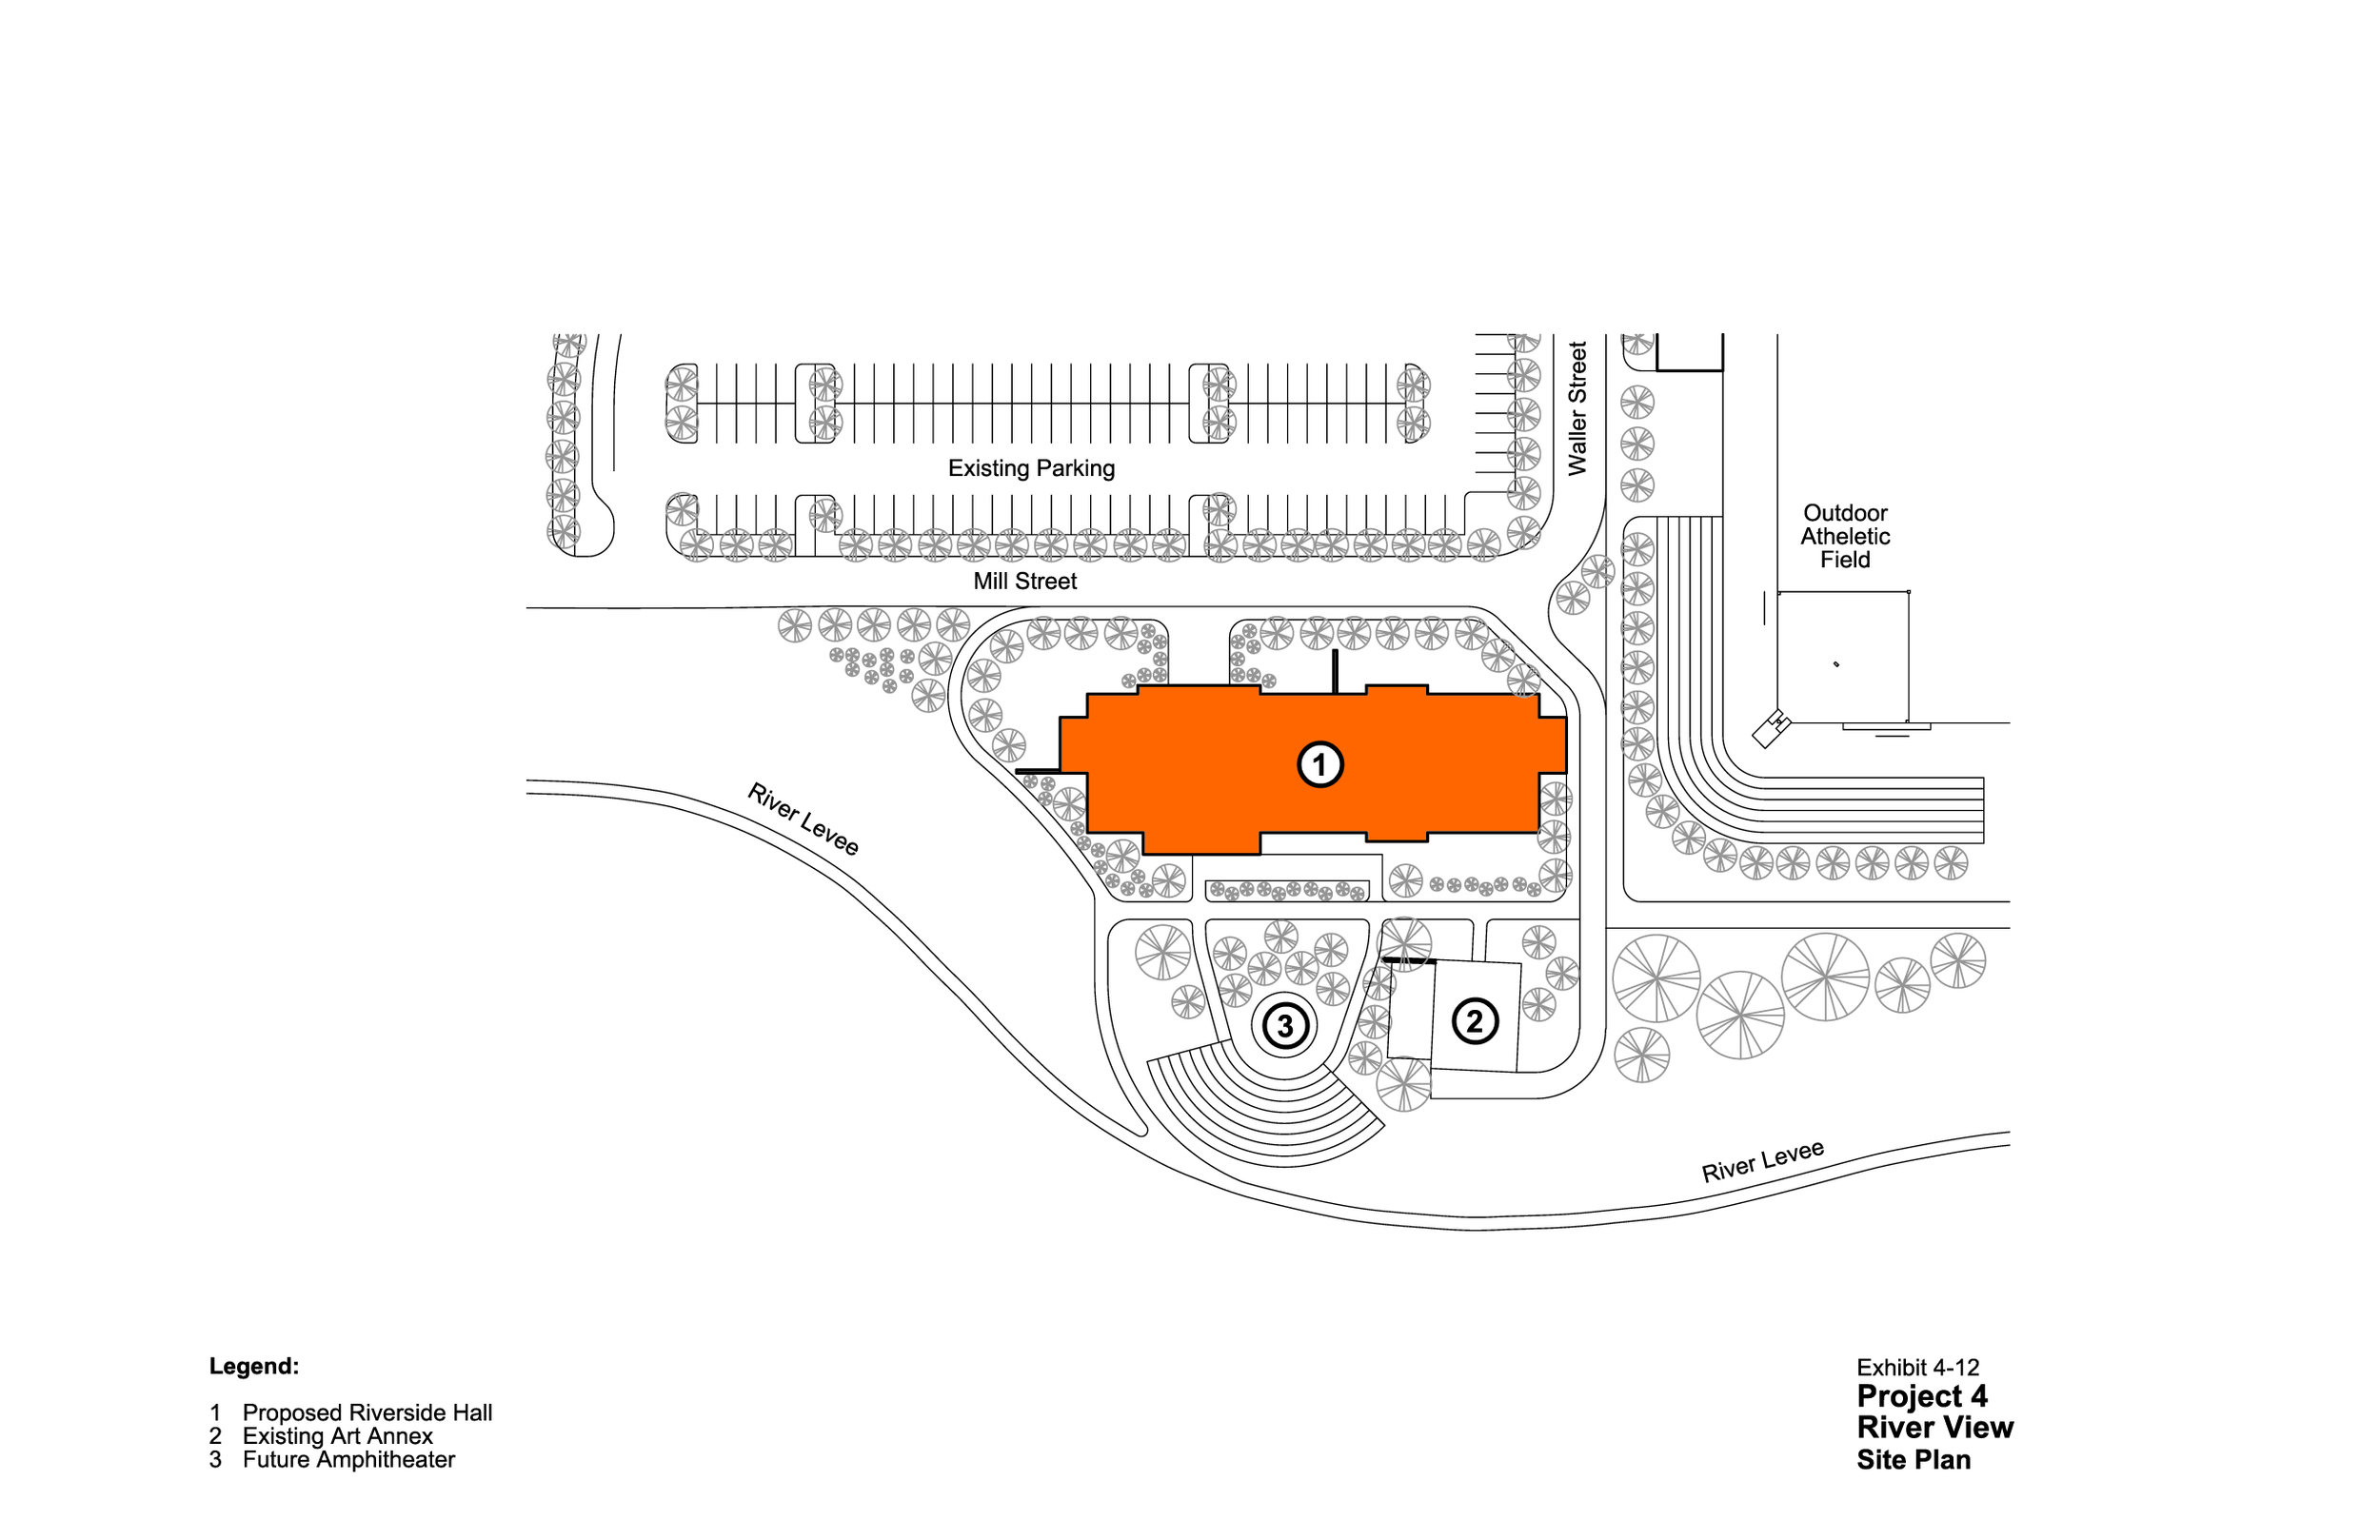 Exhibit4-12_Project 4 Site Plan.jpg